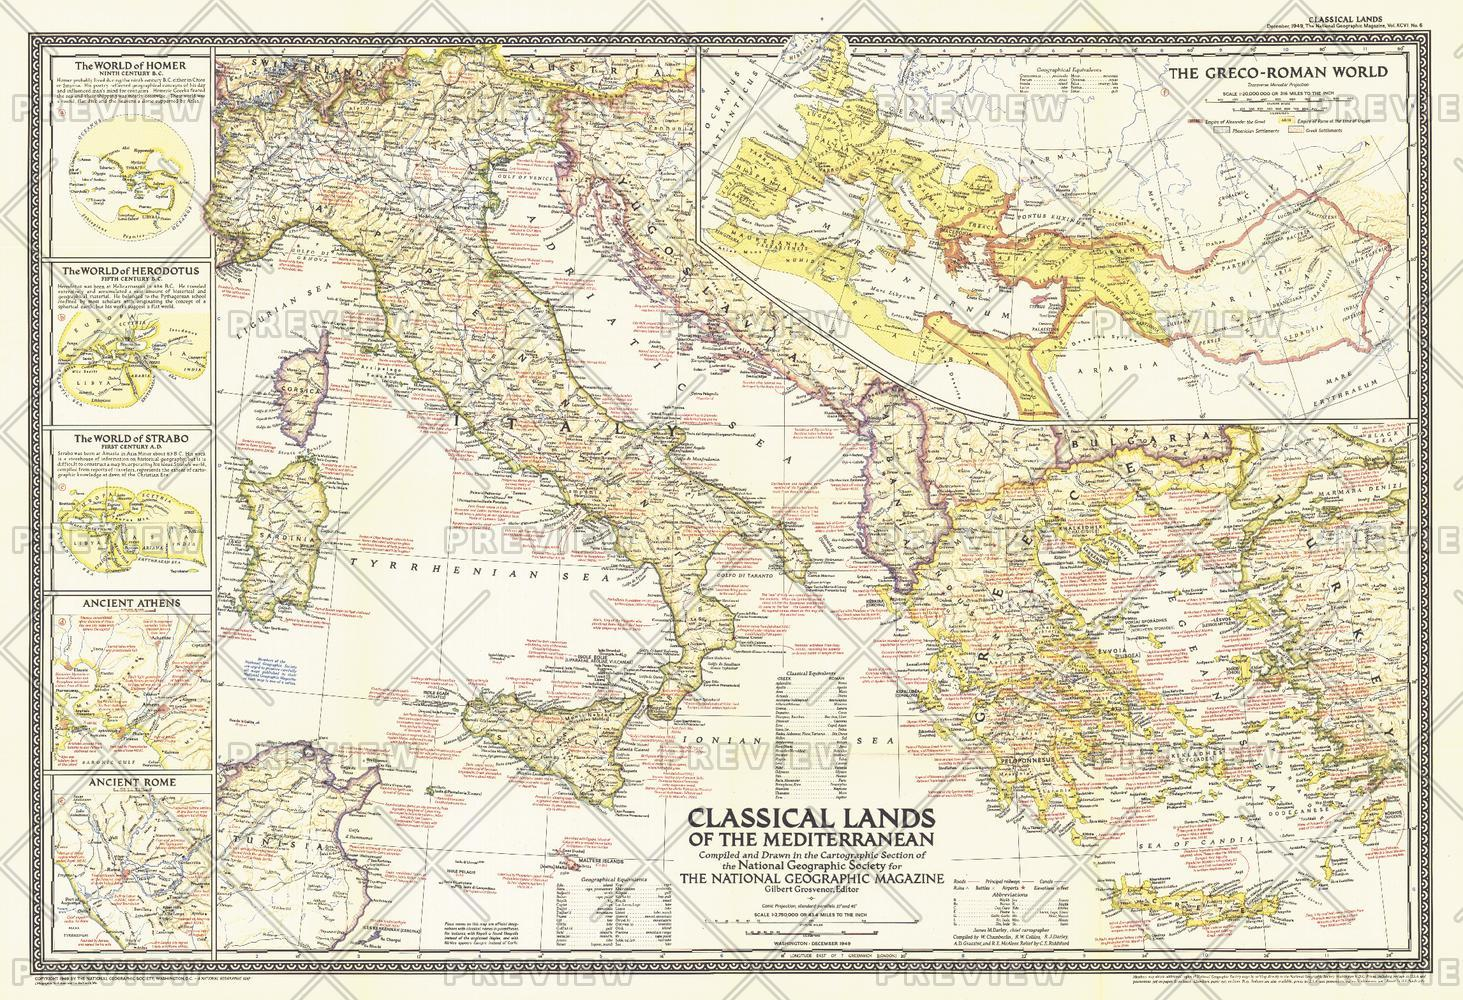 Classical Lands of the Mediterranean  -  Published 1949